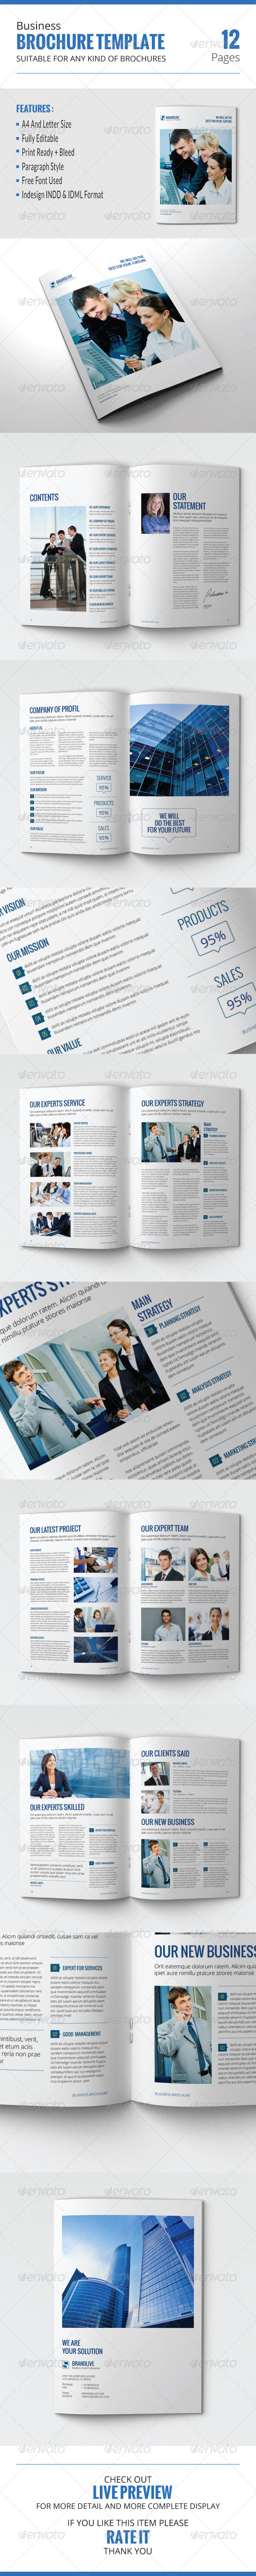 GraphicRiver Business Brochure Template 7822270